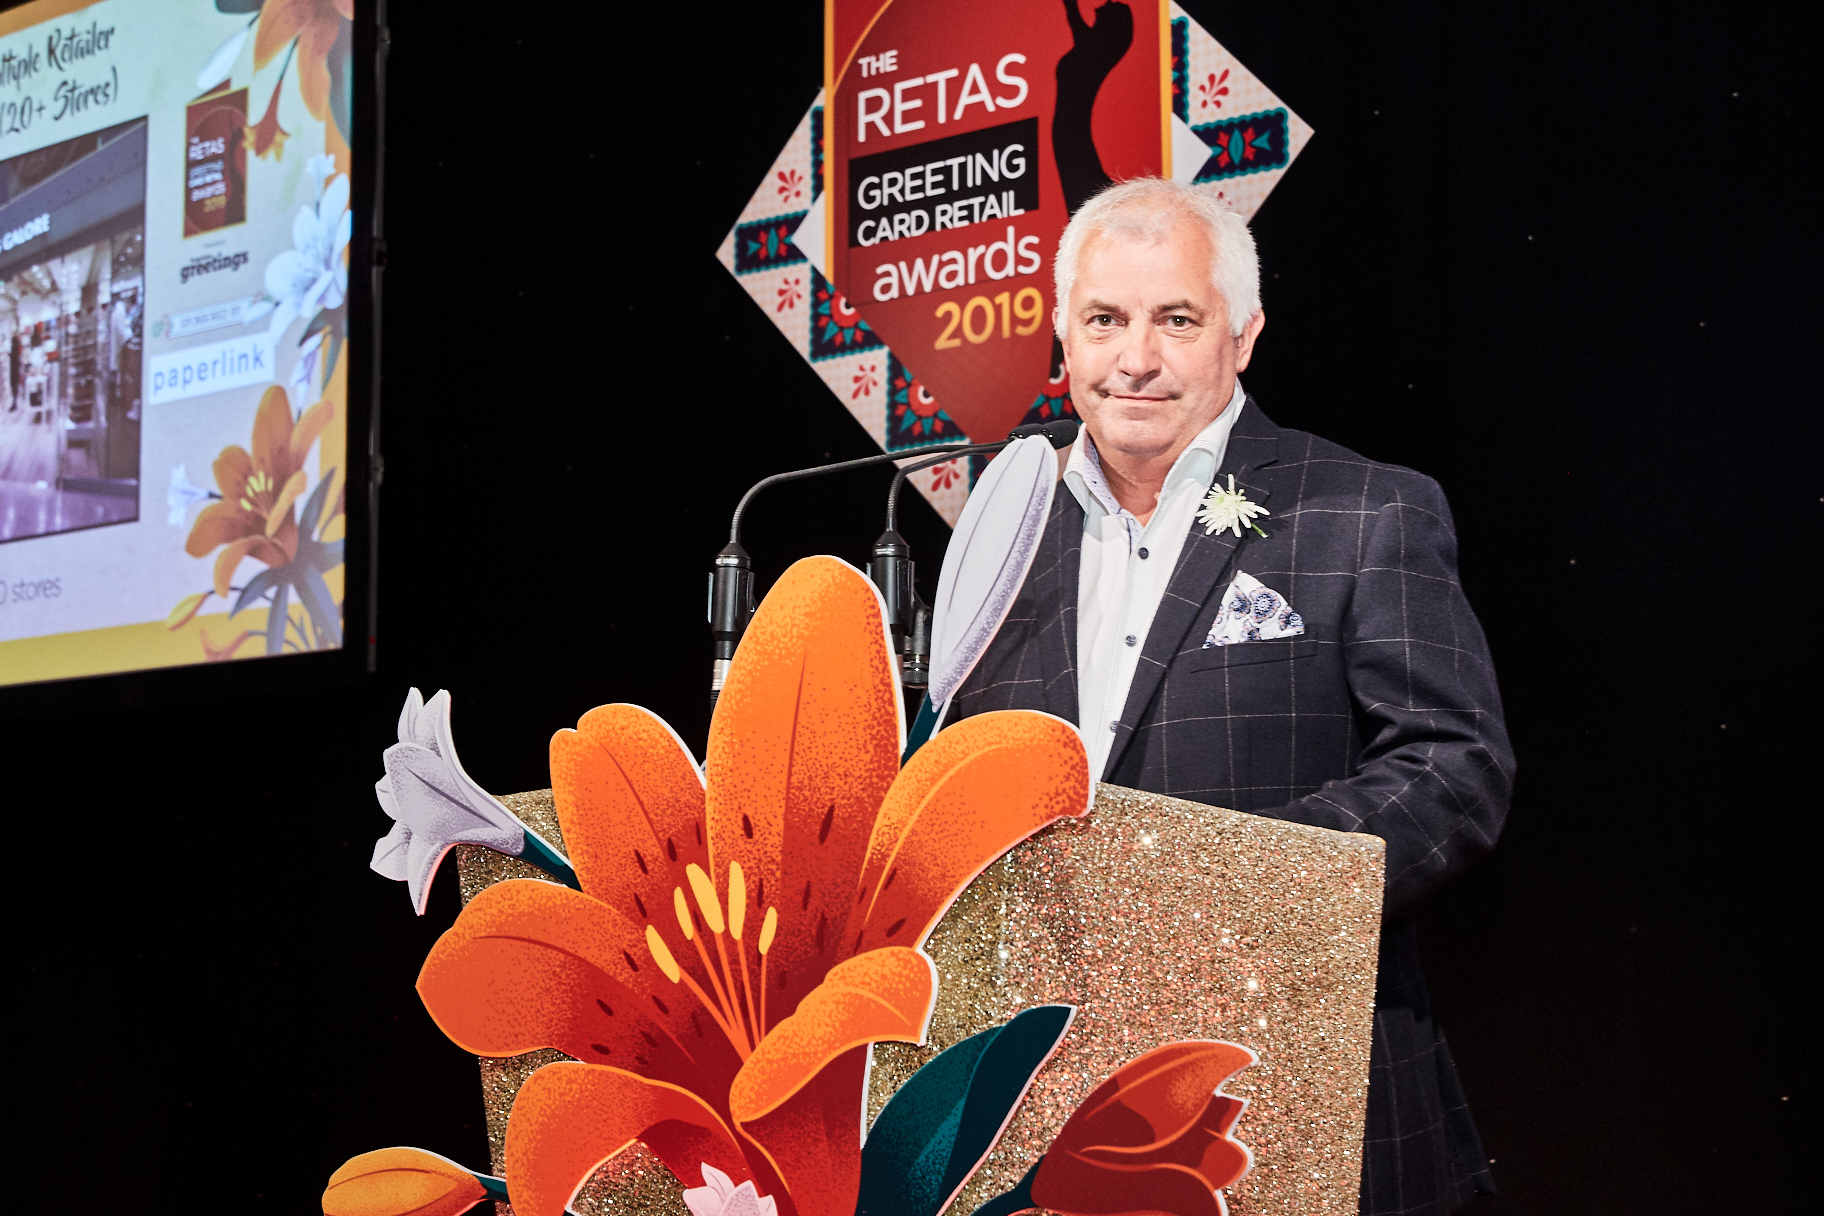 Above: Bill Greeno on stage at The Retas awards, of which Paperlink is a sponsor.